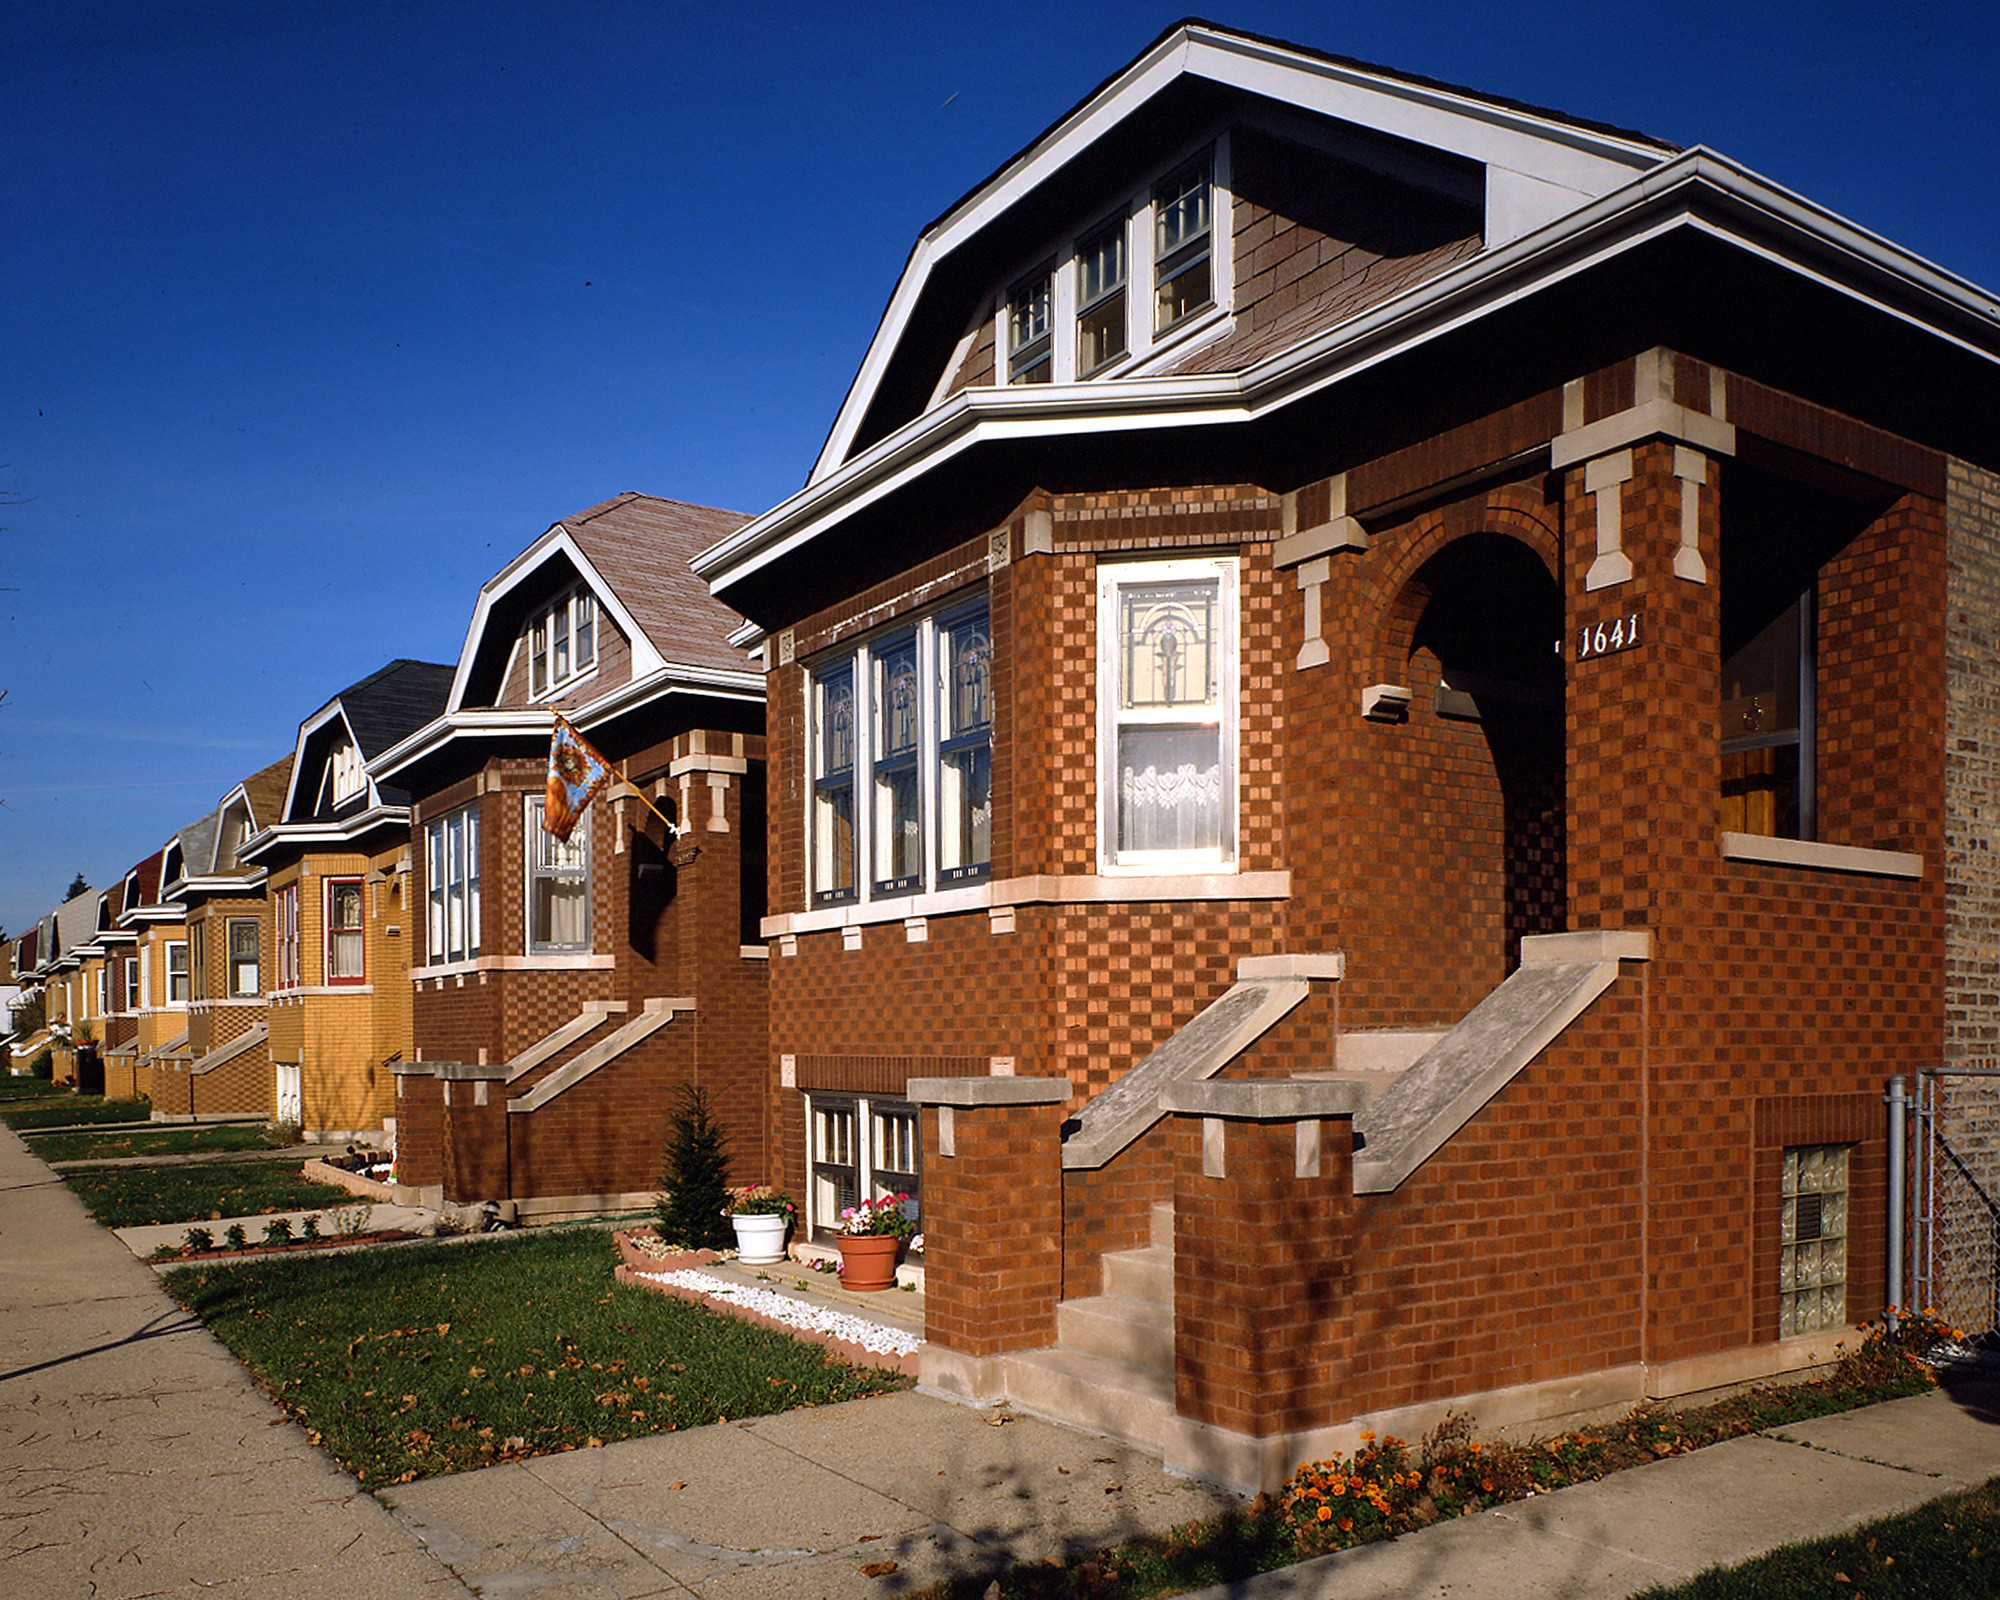 Between World War I And The Great Depression, More Than 80,000 Bungalows  Were Built In Chicago. These One And A Half Story Homesu2014with Detailed  Masonry And ...